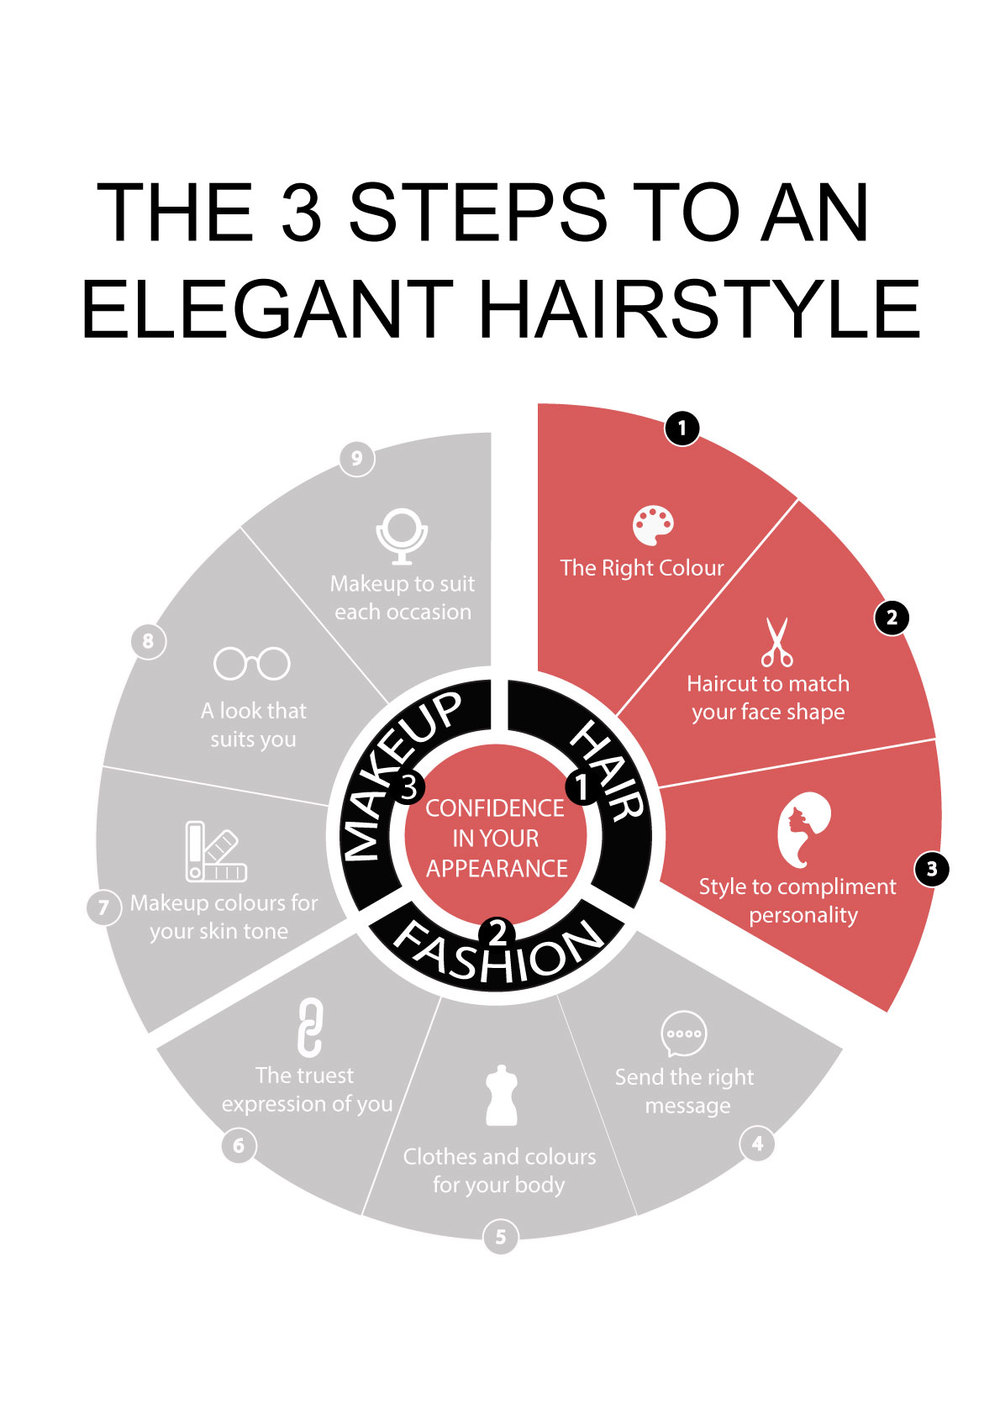 The 3 steps to the perfect hairstyle for you.  Taken from our 9 step effortless                                                                                                      elegance styling program